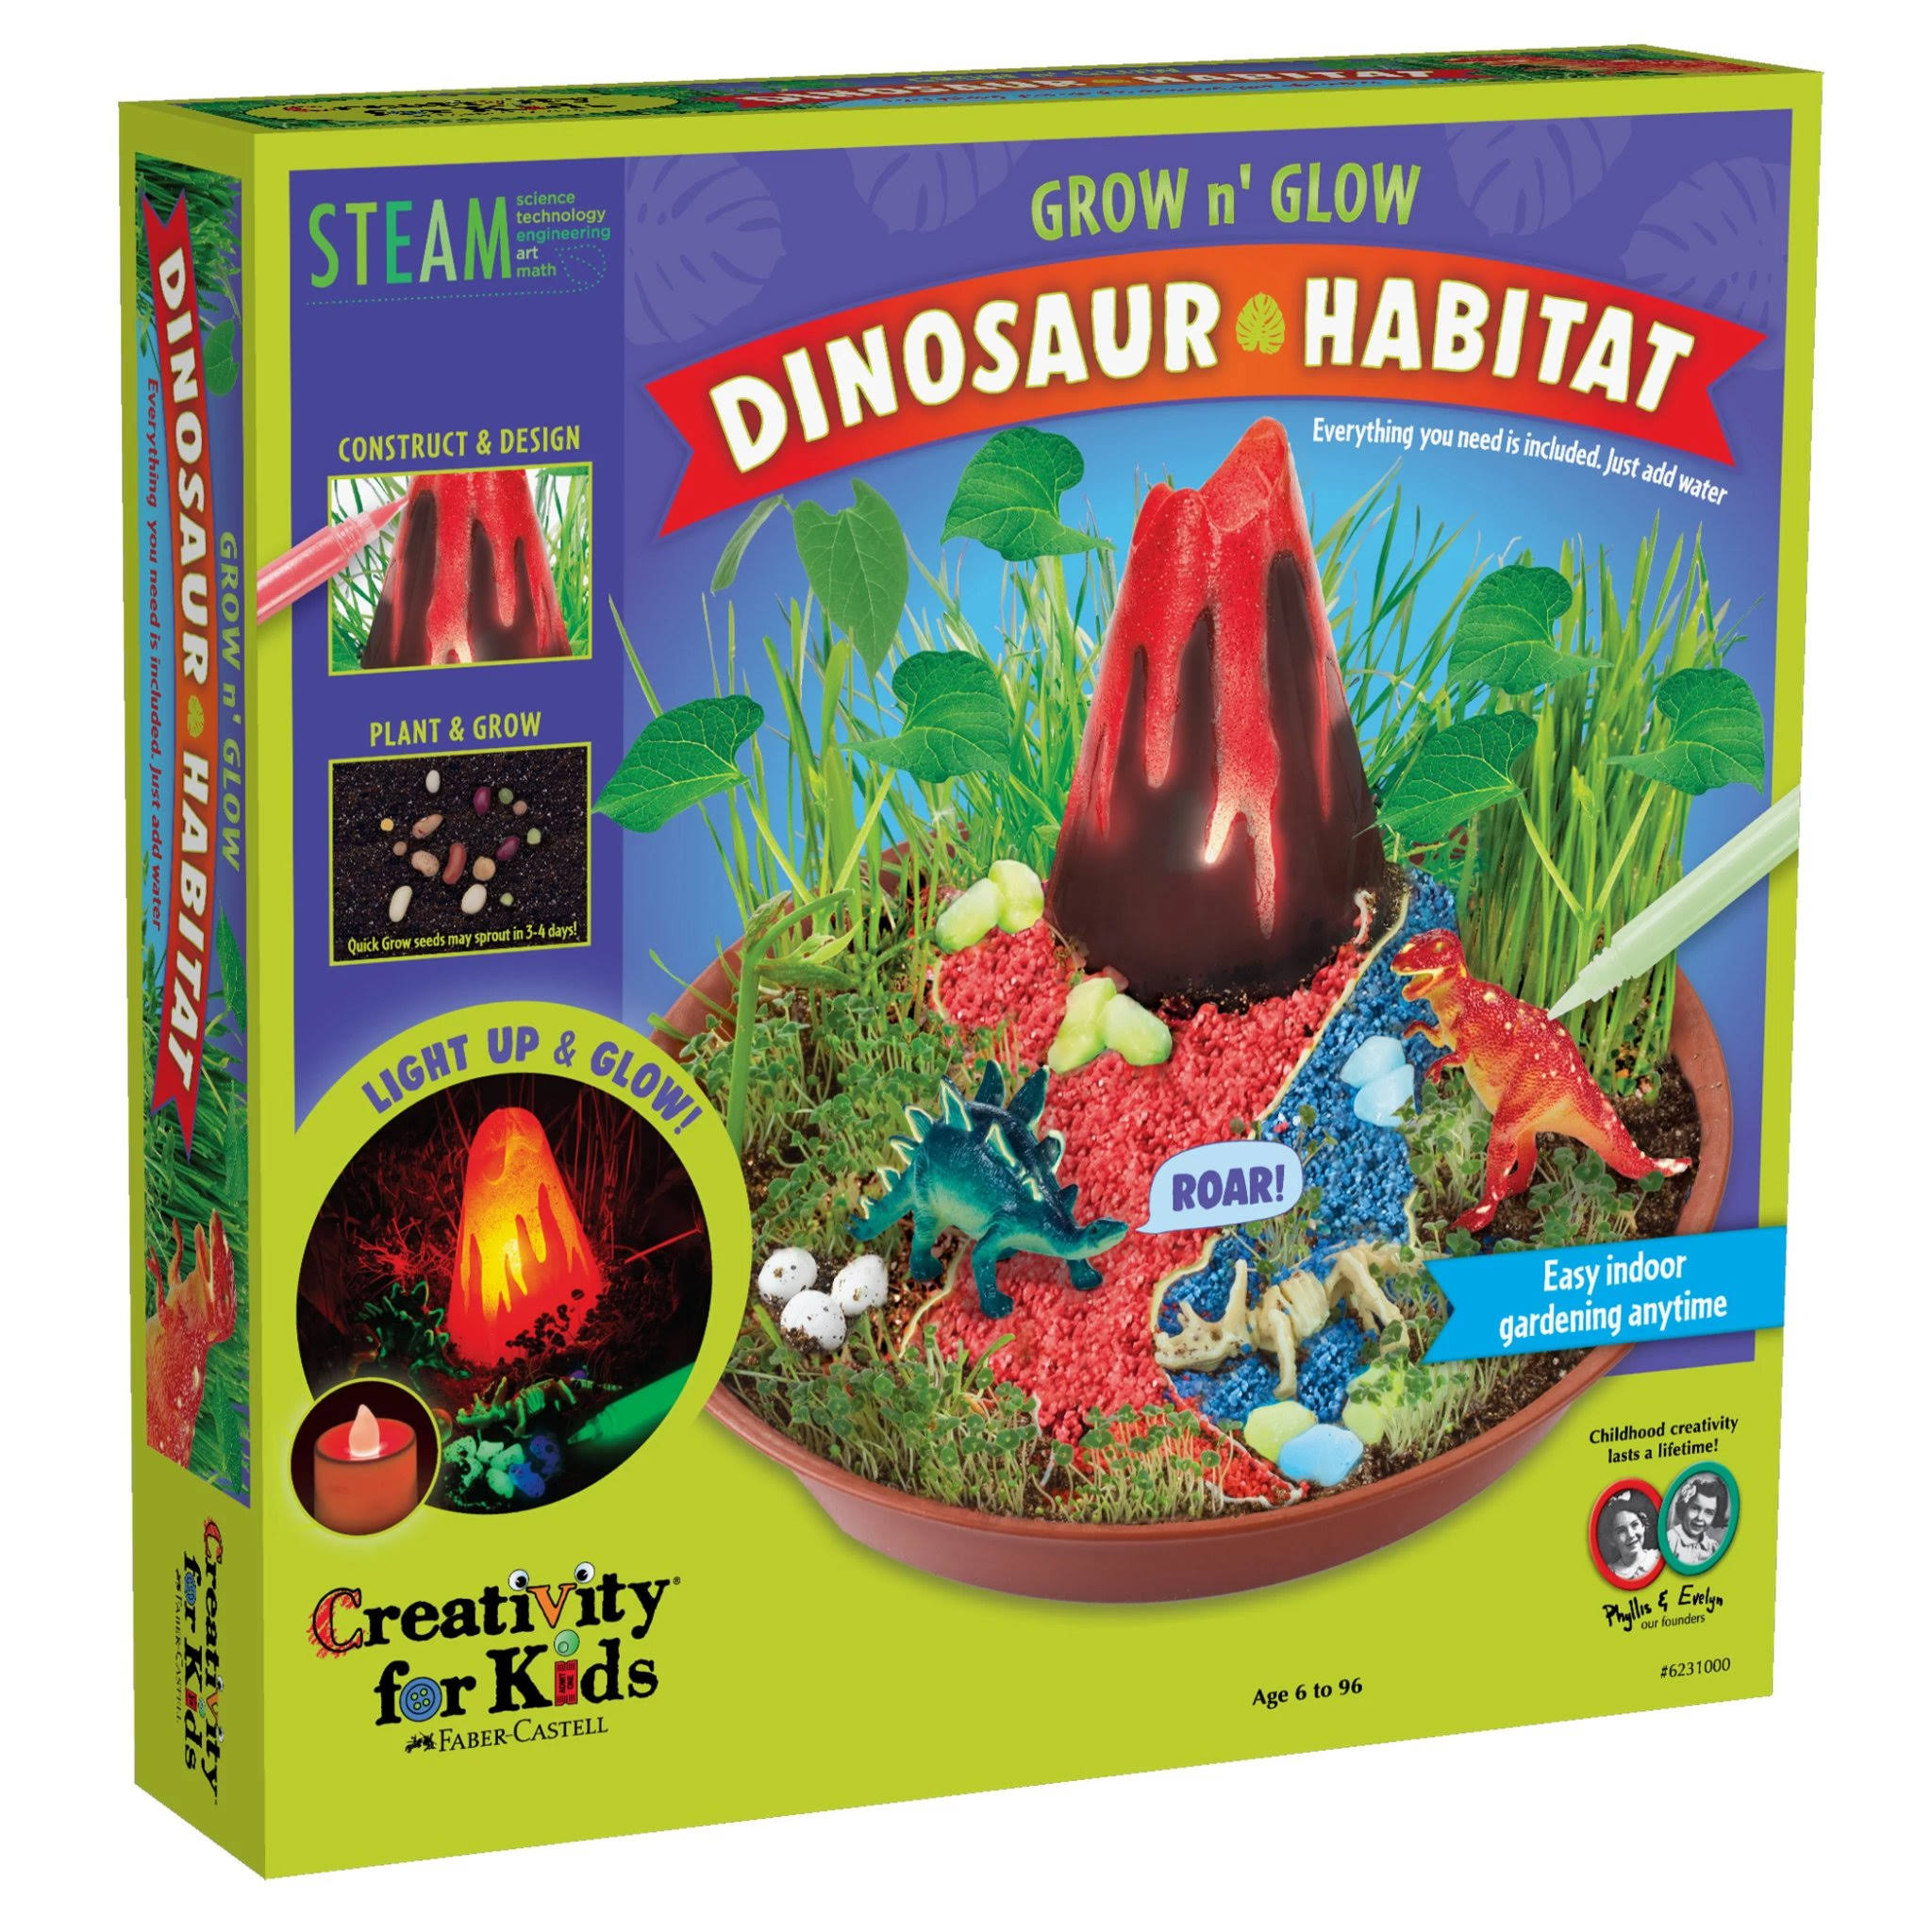 Creativity for Kids - Grow N' Glow Dinosaur Habitat